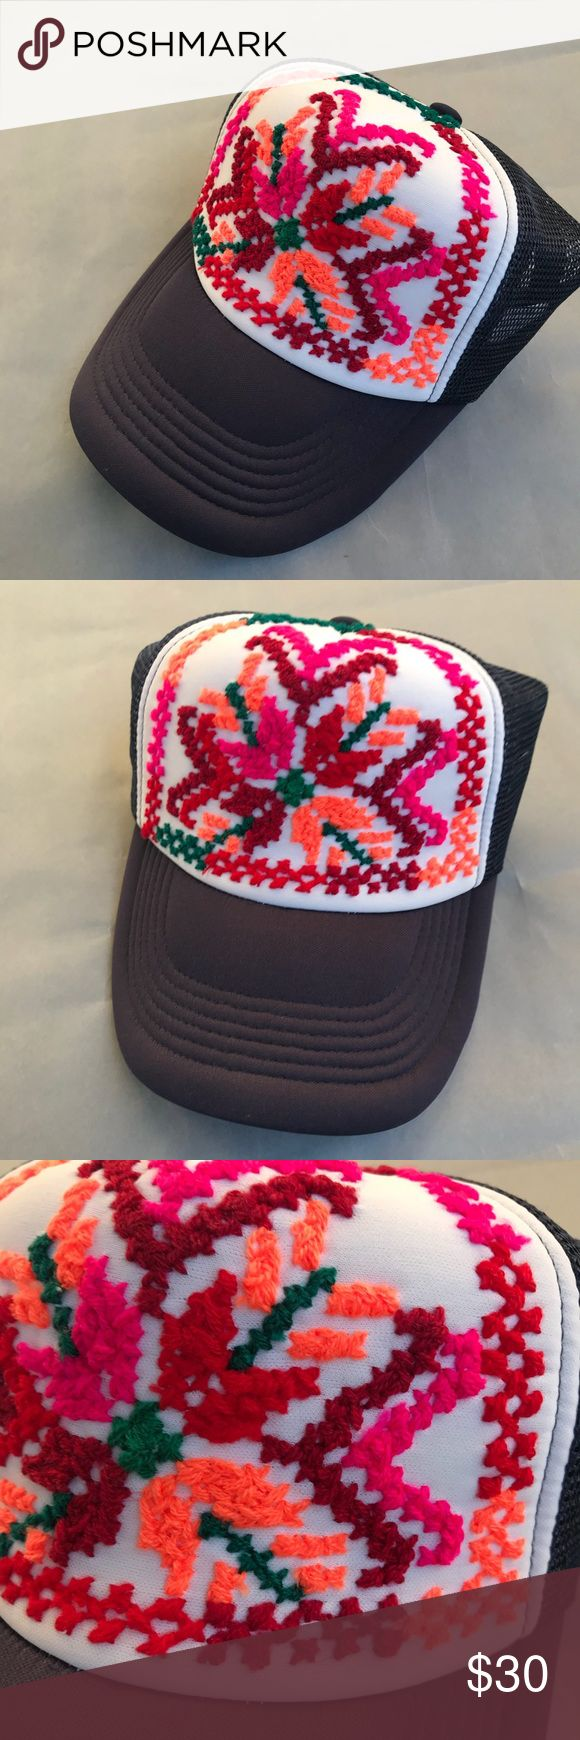 Embroidered hat Bought in Mexico, but never worn. The embroidered flower is from the Huasteca region of San Luis Potosí. Accessories Hats